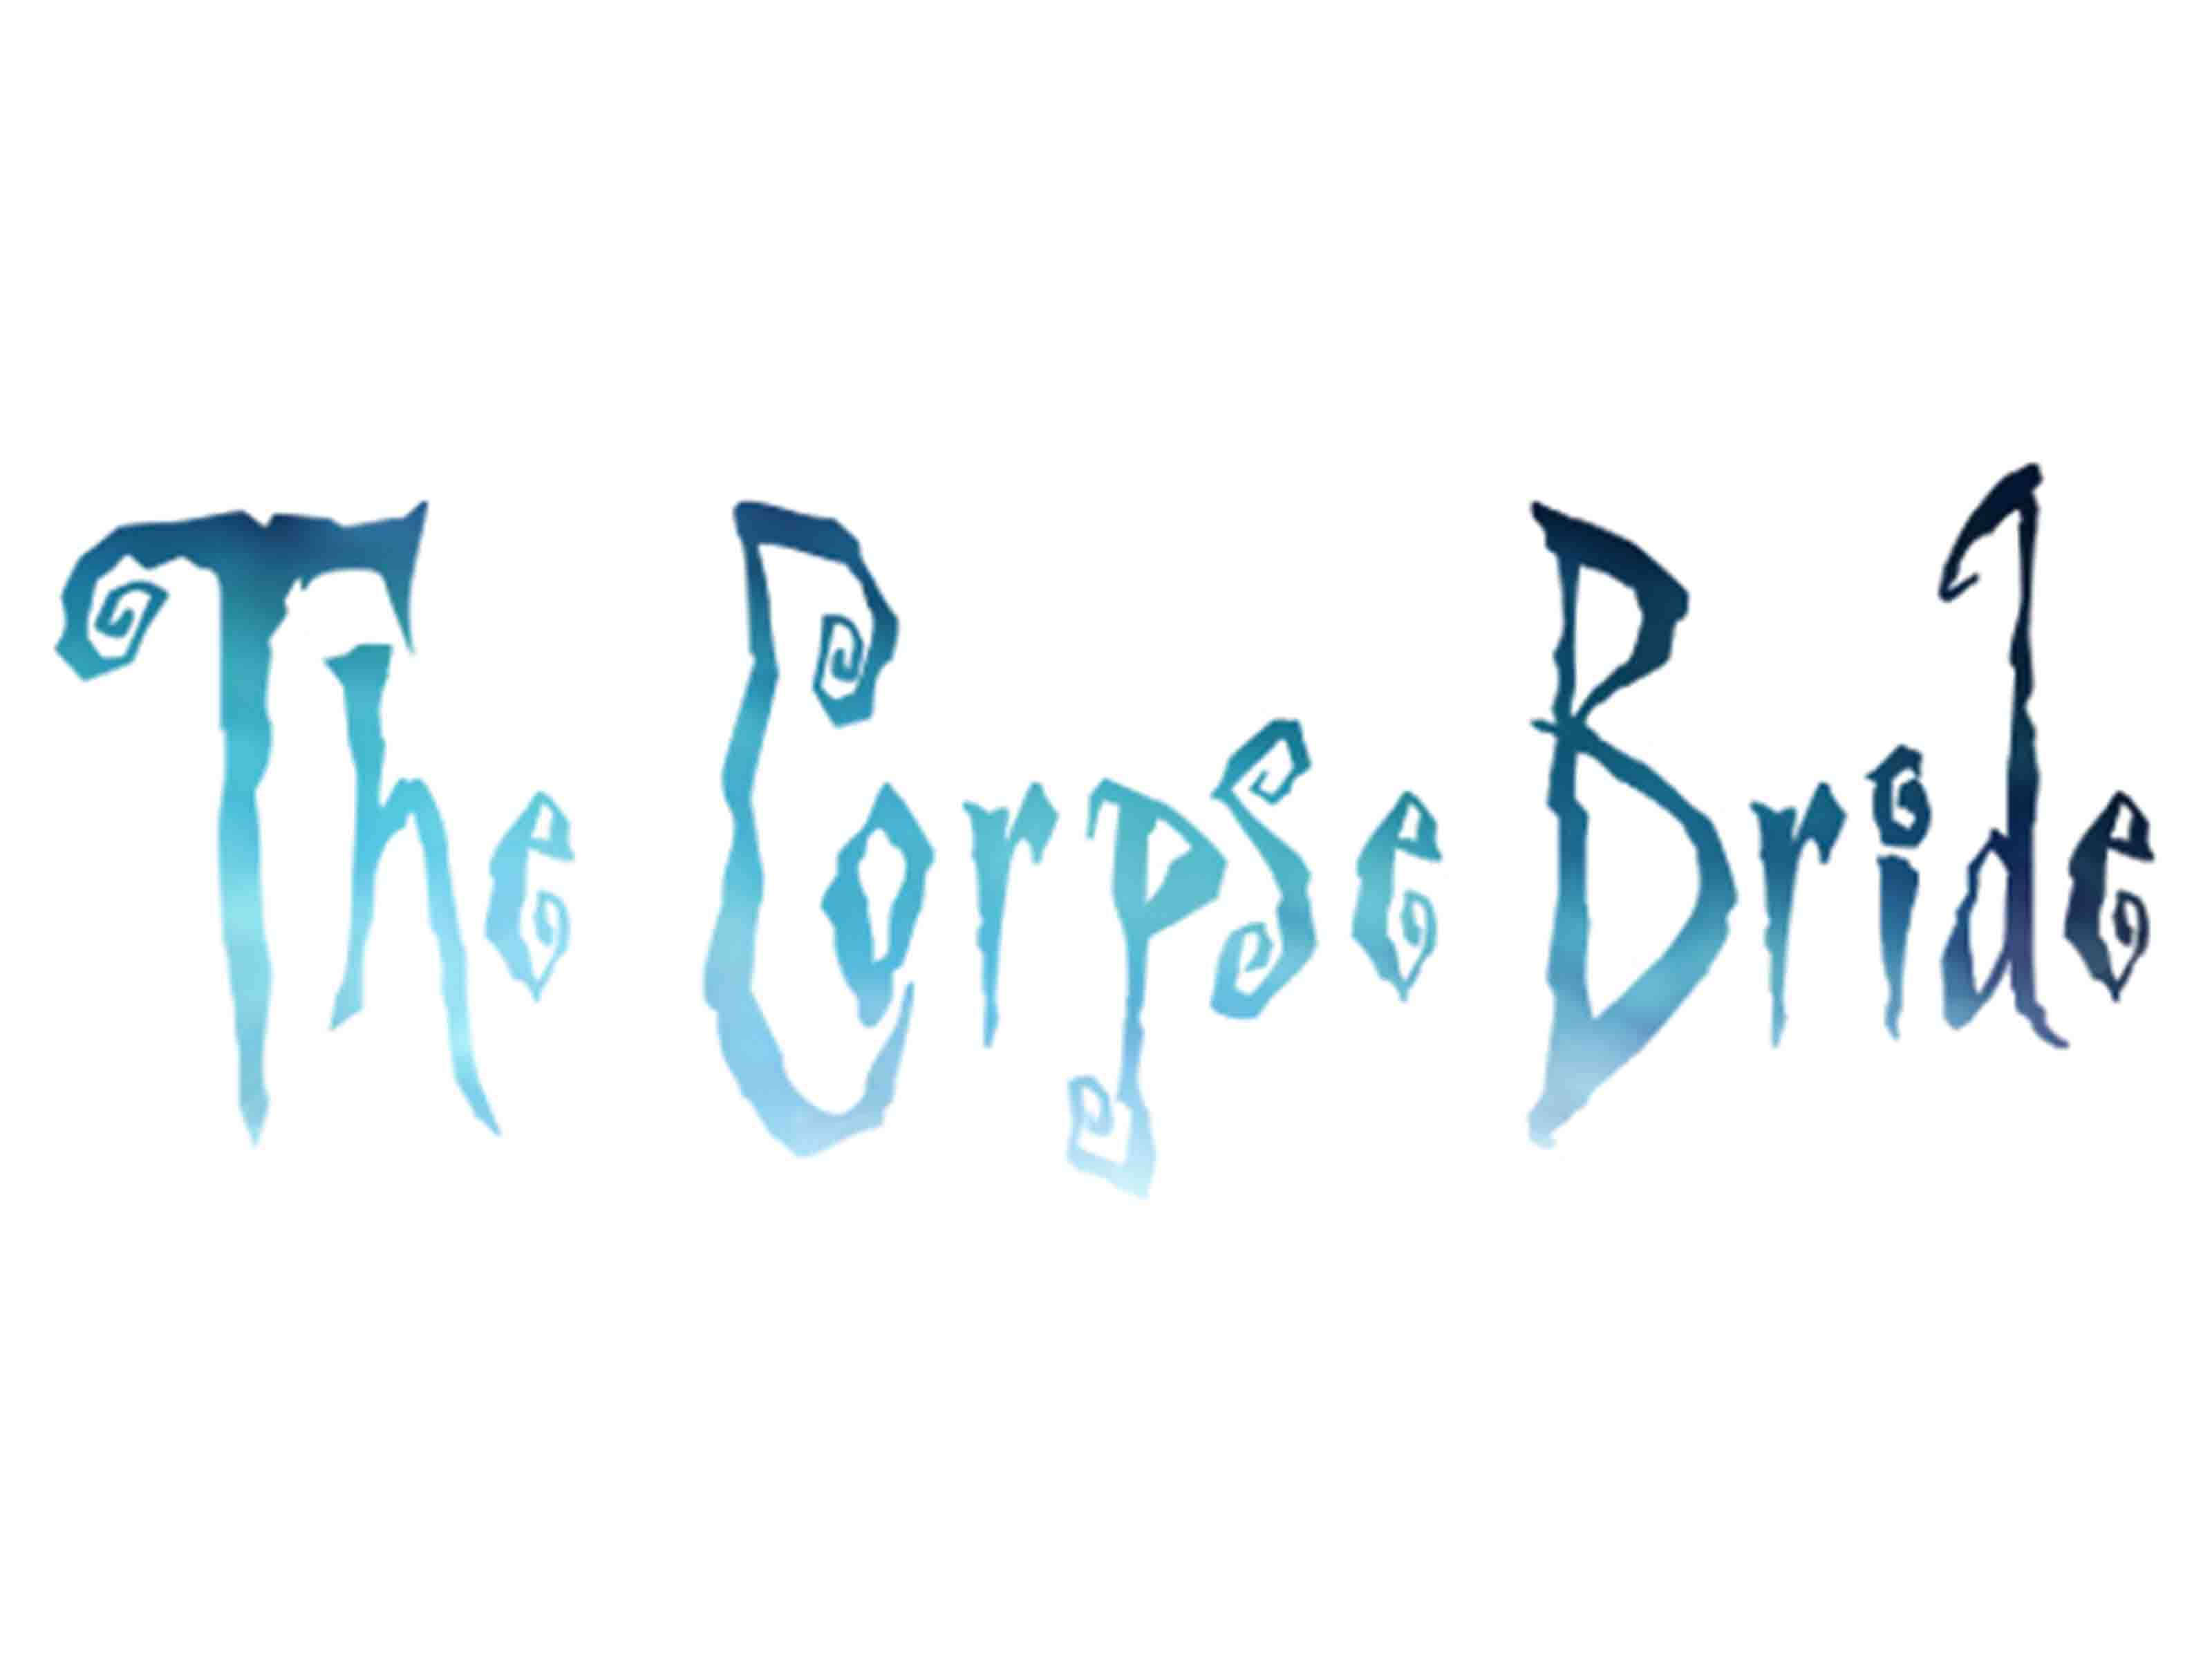 Hen Party Themes - The Corpse Bride